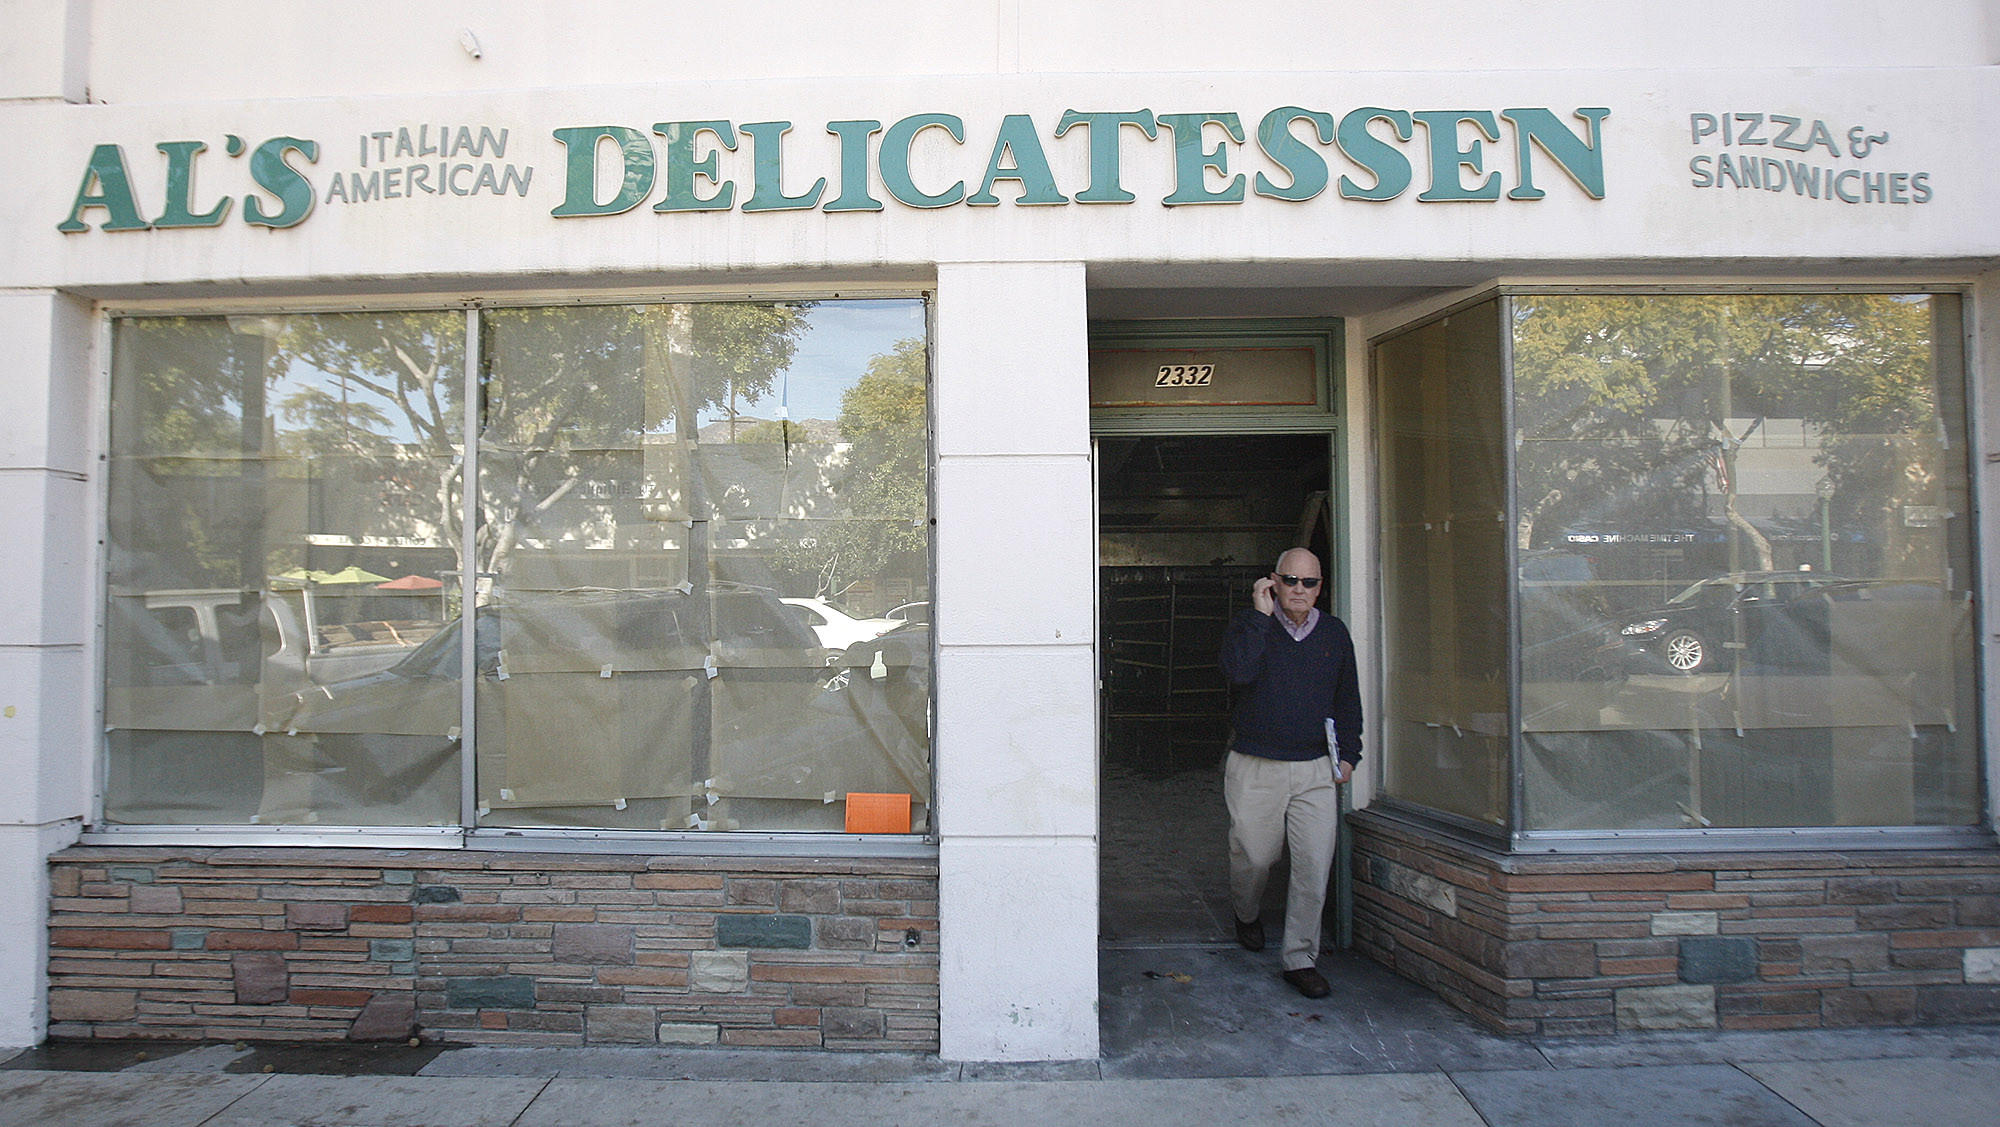 Crescenta Valley Chamber of Commerce President Steve Pierce walks out of the closed Al's Italian American Delicatessen in Montrose on Monday, January 13, 2014. Pierce was checking out the progress of the construction for the restaurant that will be re-occupying the vacancy. Al's had been in place for 60 years until it became too expensive to operate in downtown Montrose.